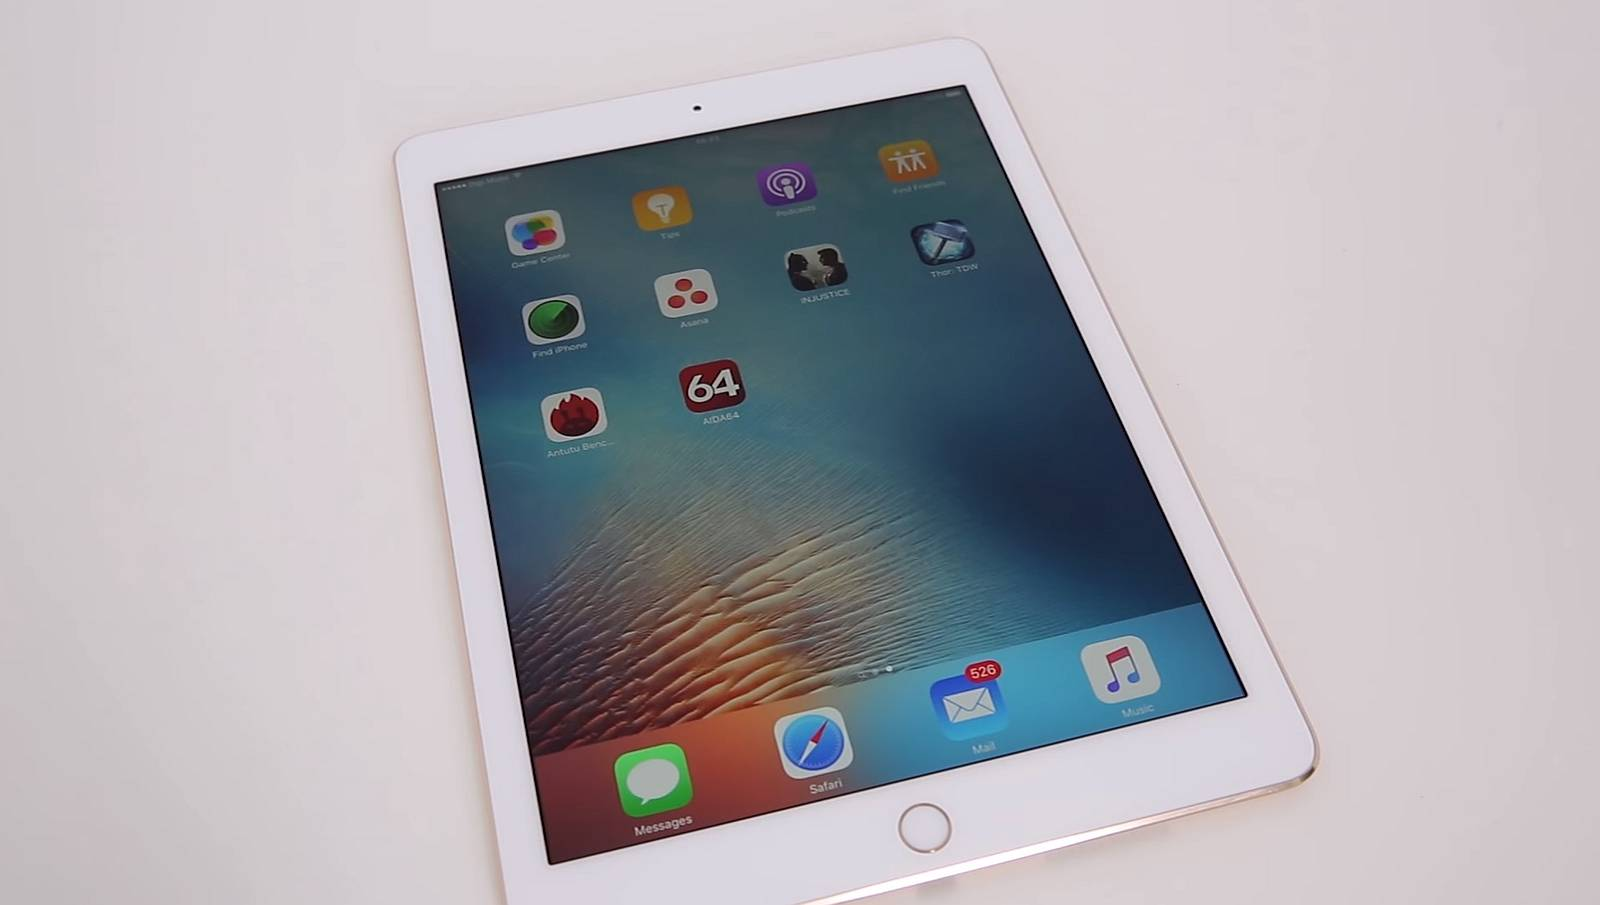 Photo of The new iPad Pro 9.7 – can Apple provide a true alternative to laptops?